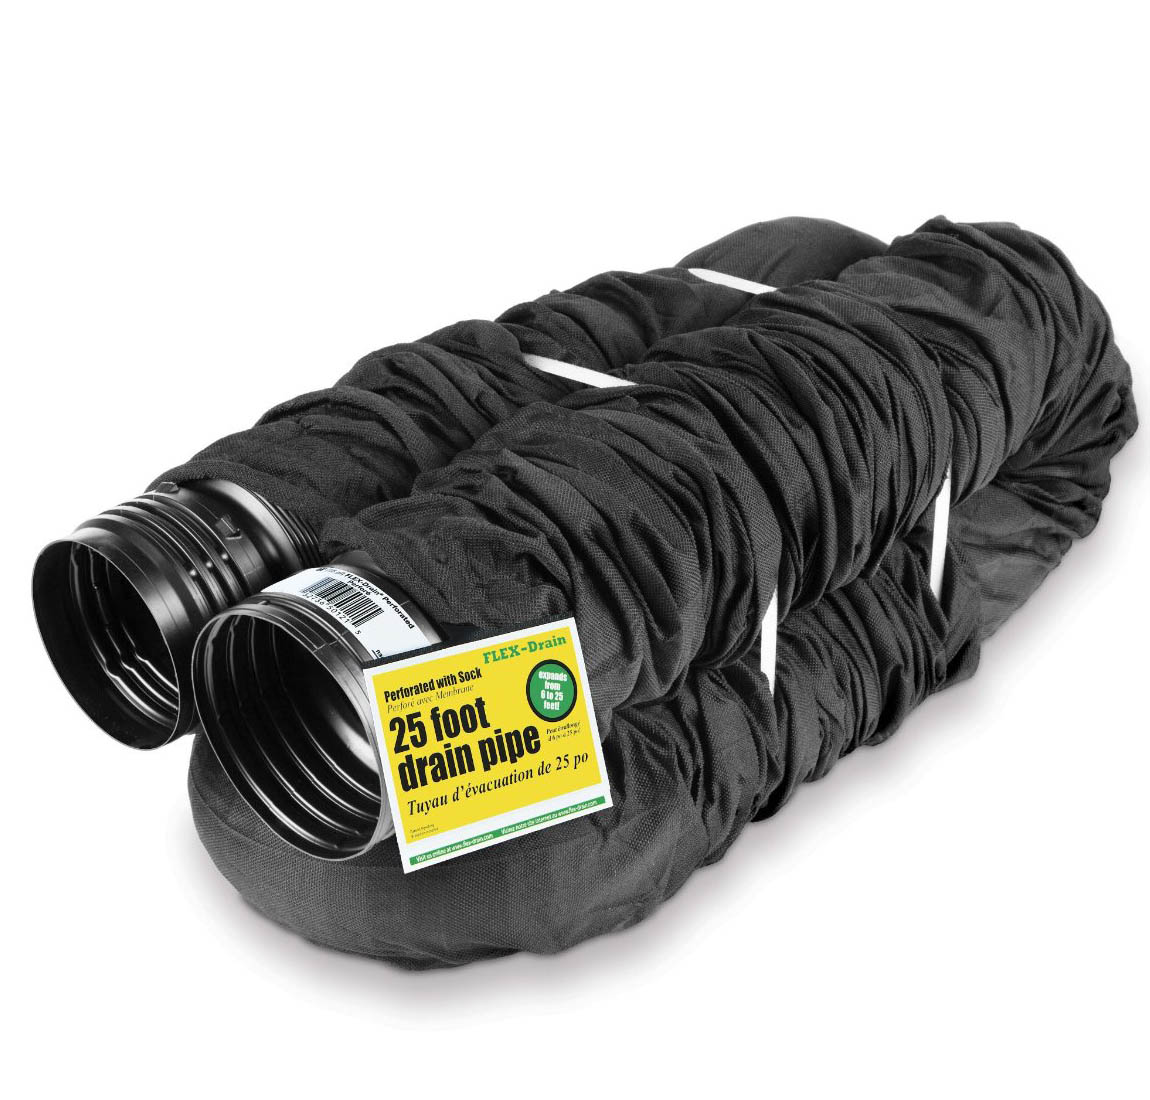 Perforated Corrugated Expandable Flexible Landscape Drain Pipe with Sock, 4-Inch by 25-Foot